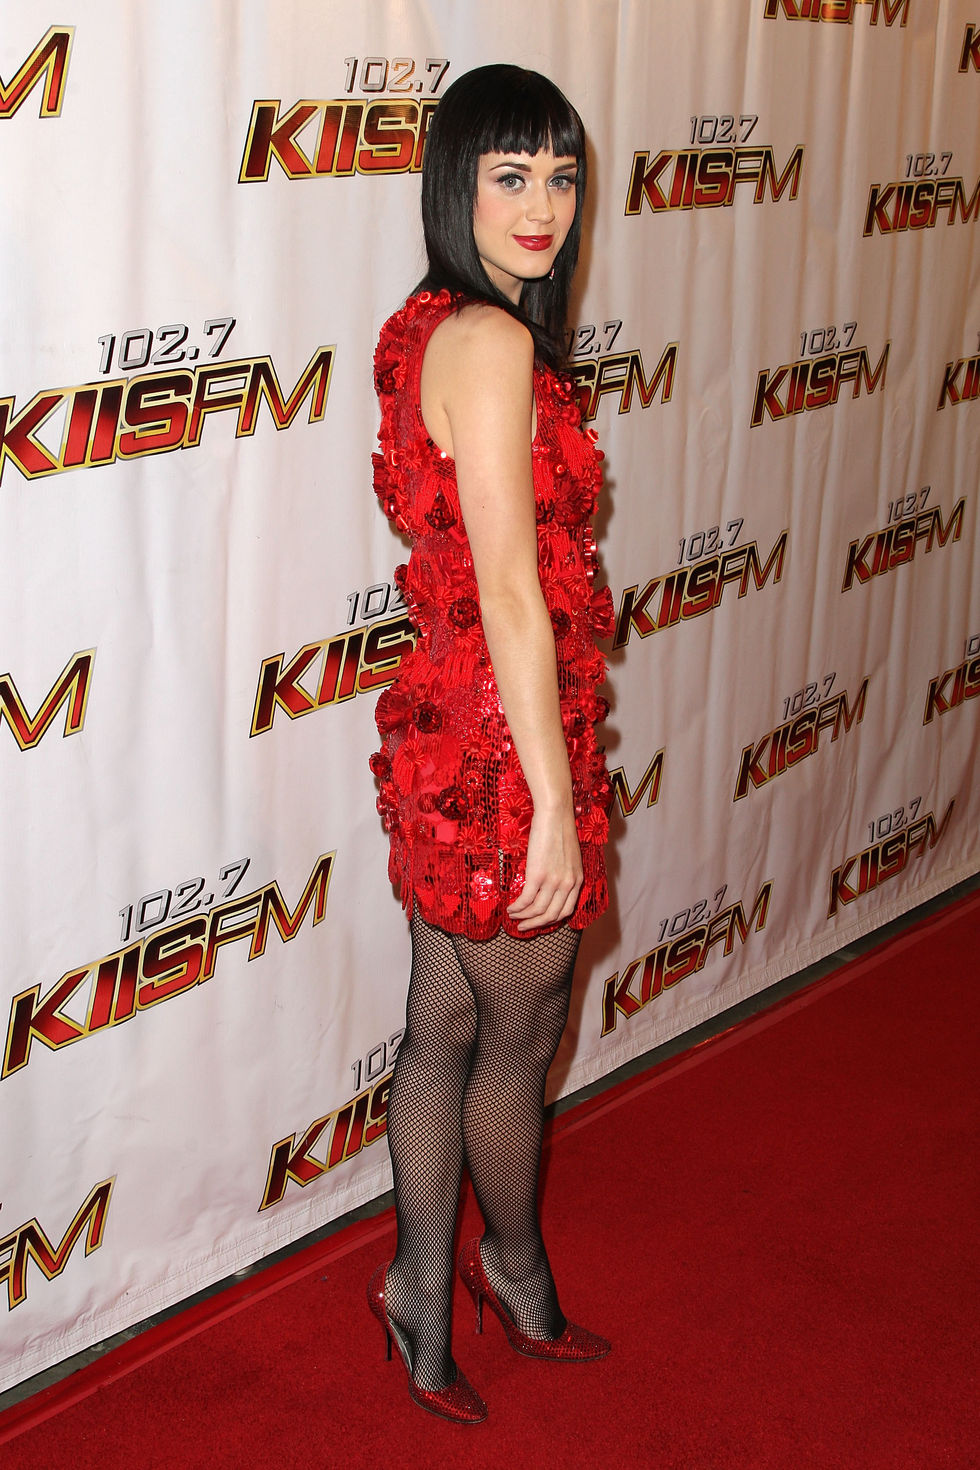 katy-perry-kiis-fms-jingle-ball-2008-01